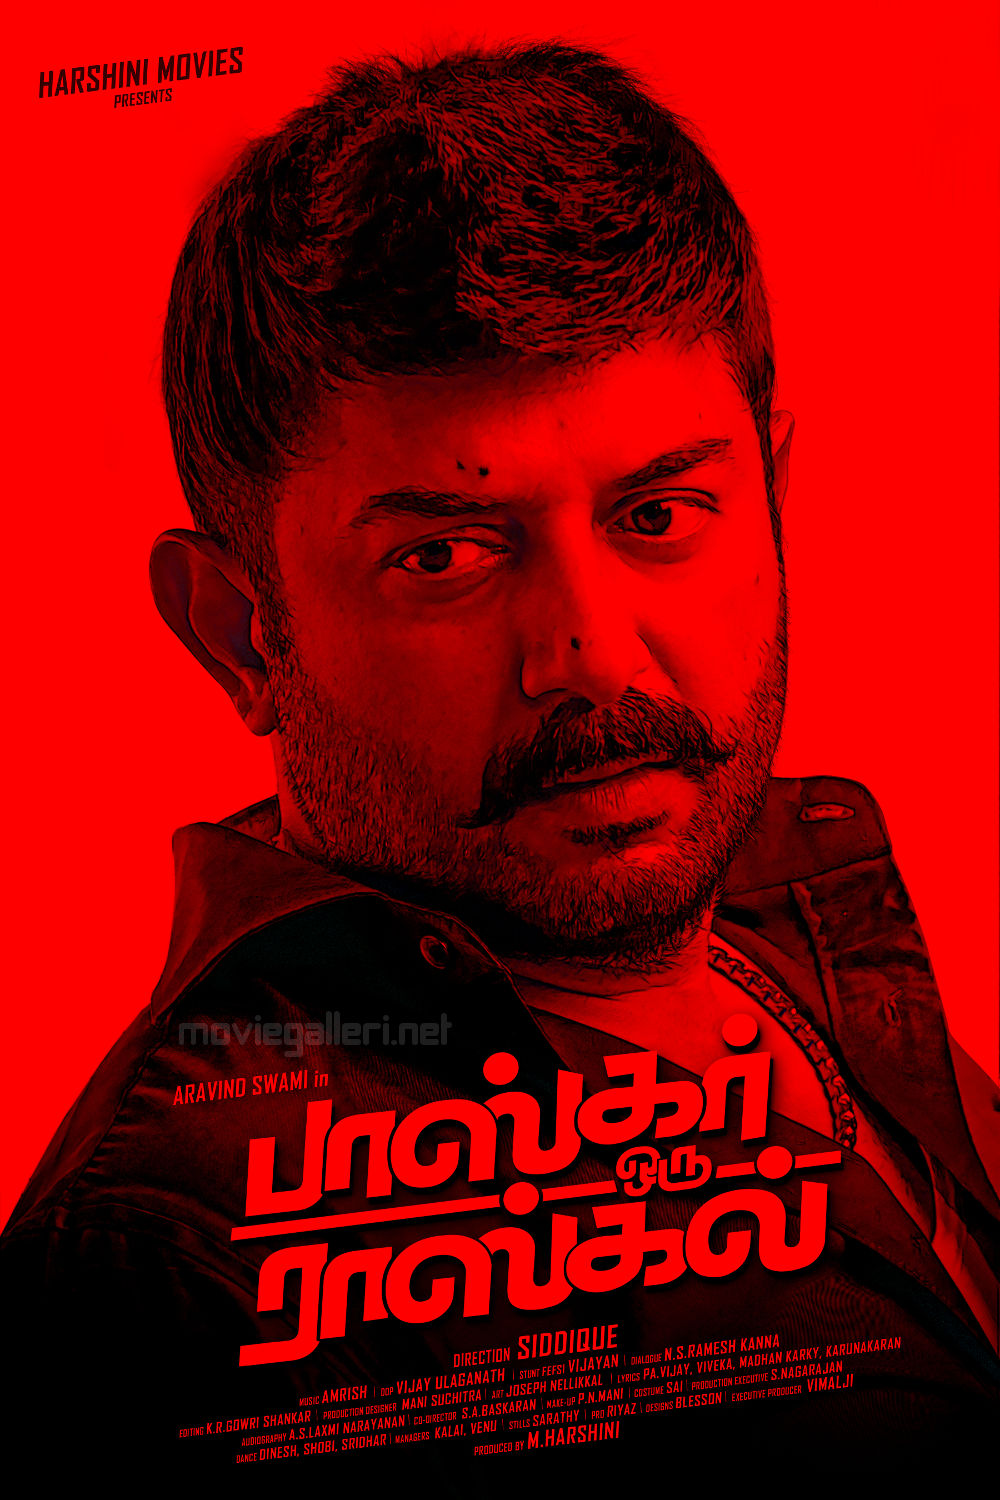 Arvind Swami to rock in Bhaskar Oru Rascal